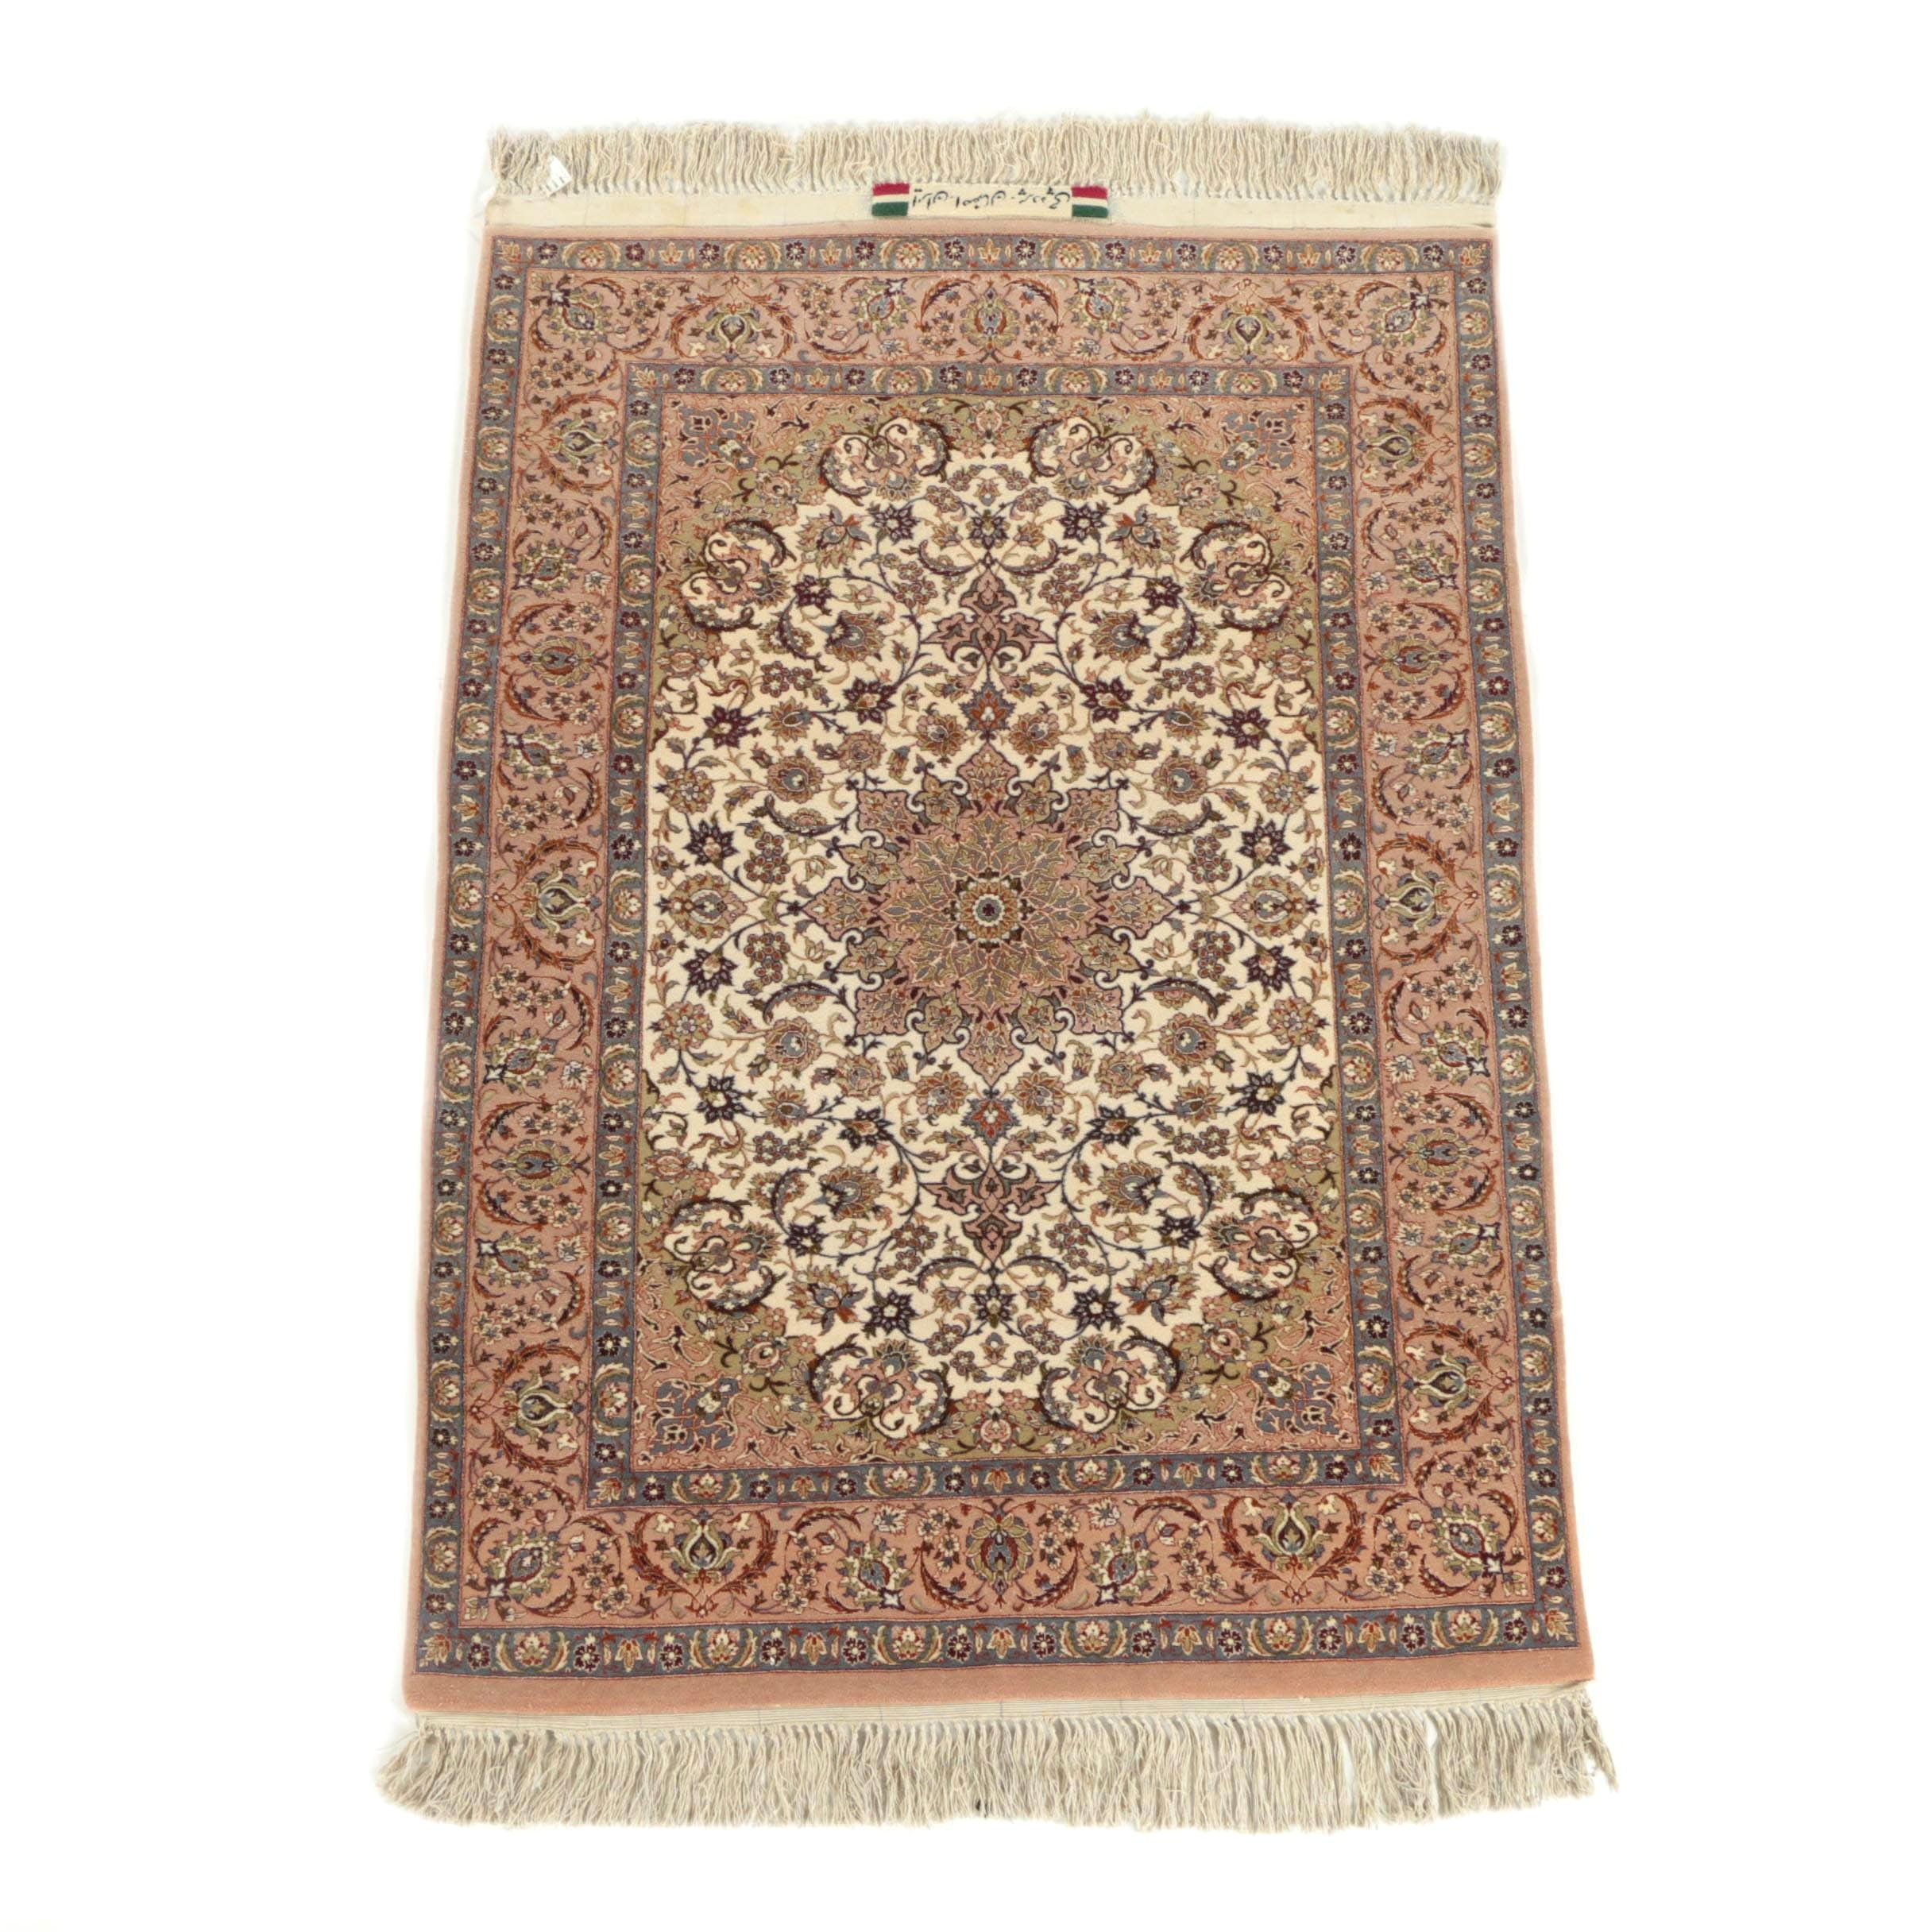 Finely Hand-Knotted Inscribed Persian Isfahan Wool And Silk Accent Rug